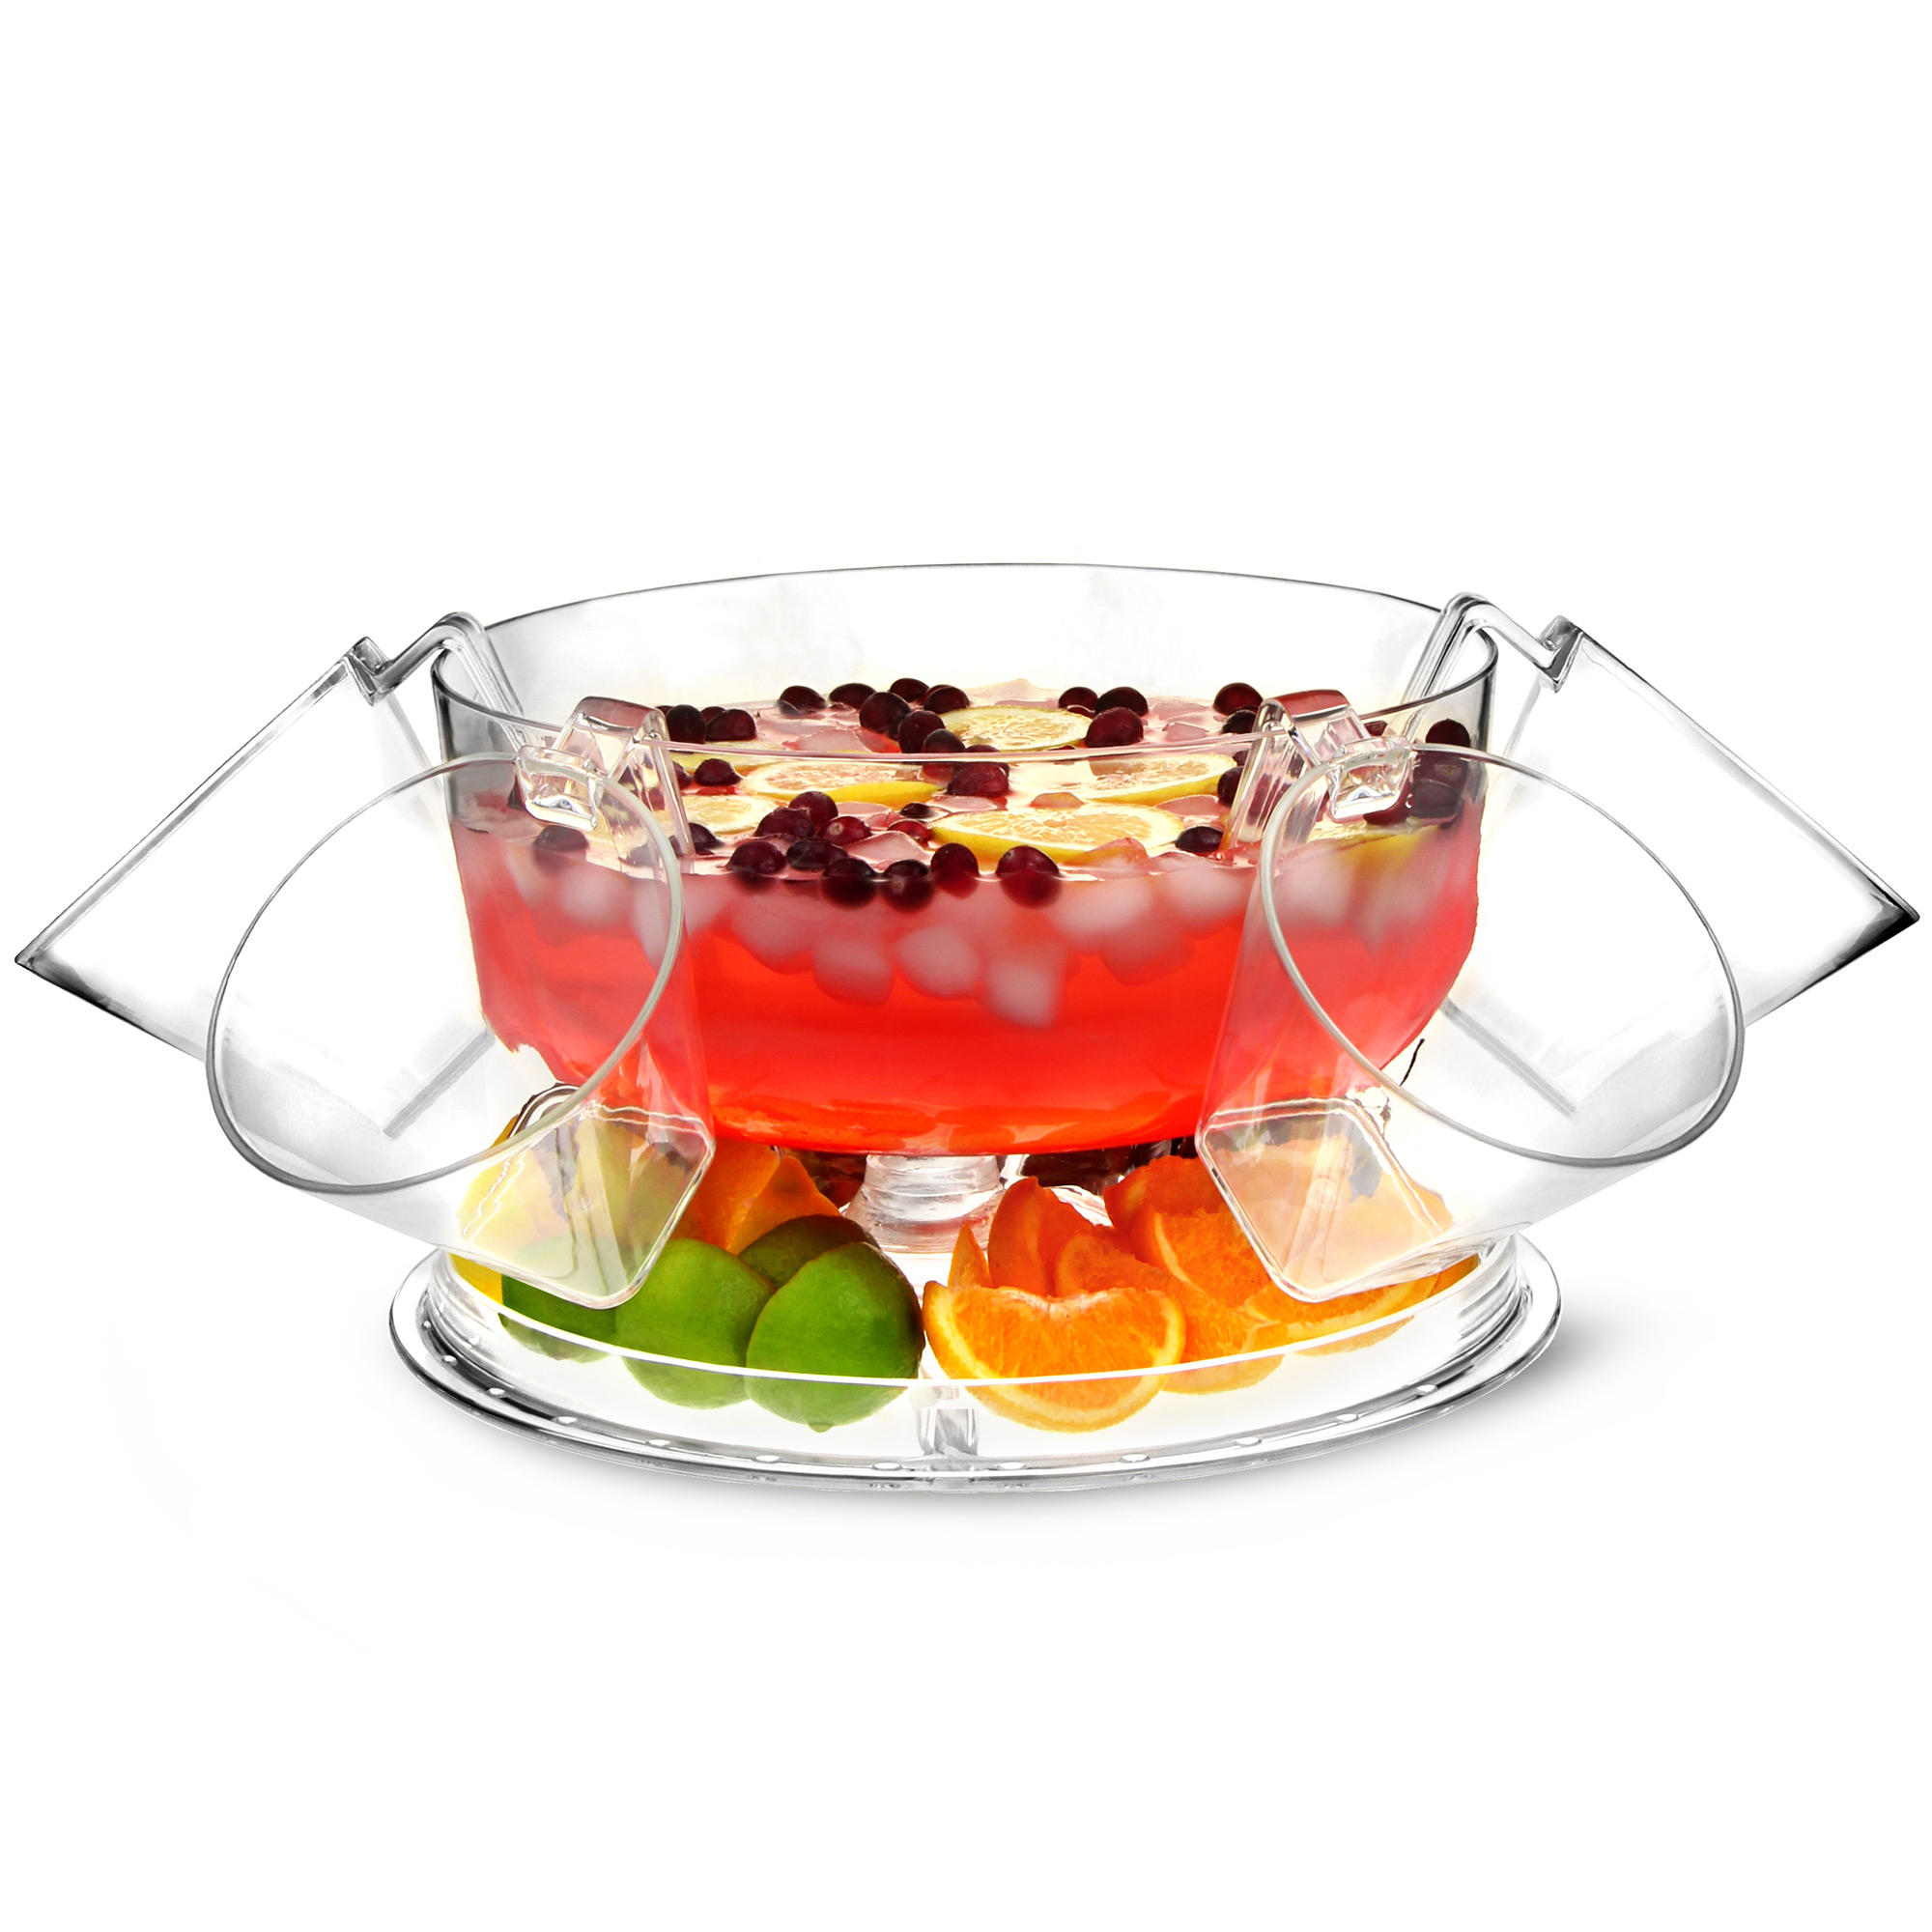 5 in 1 Plastic Punch Bowl with Four Punch Cups